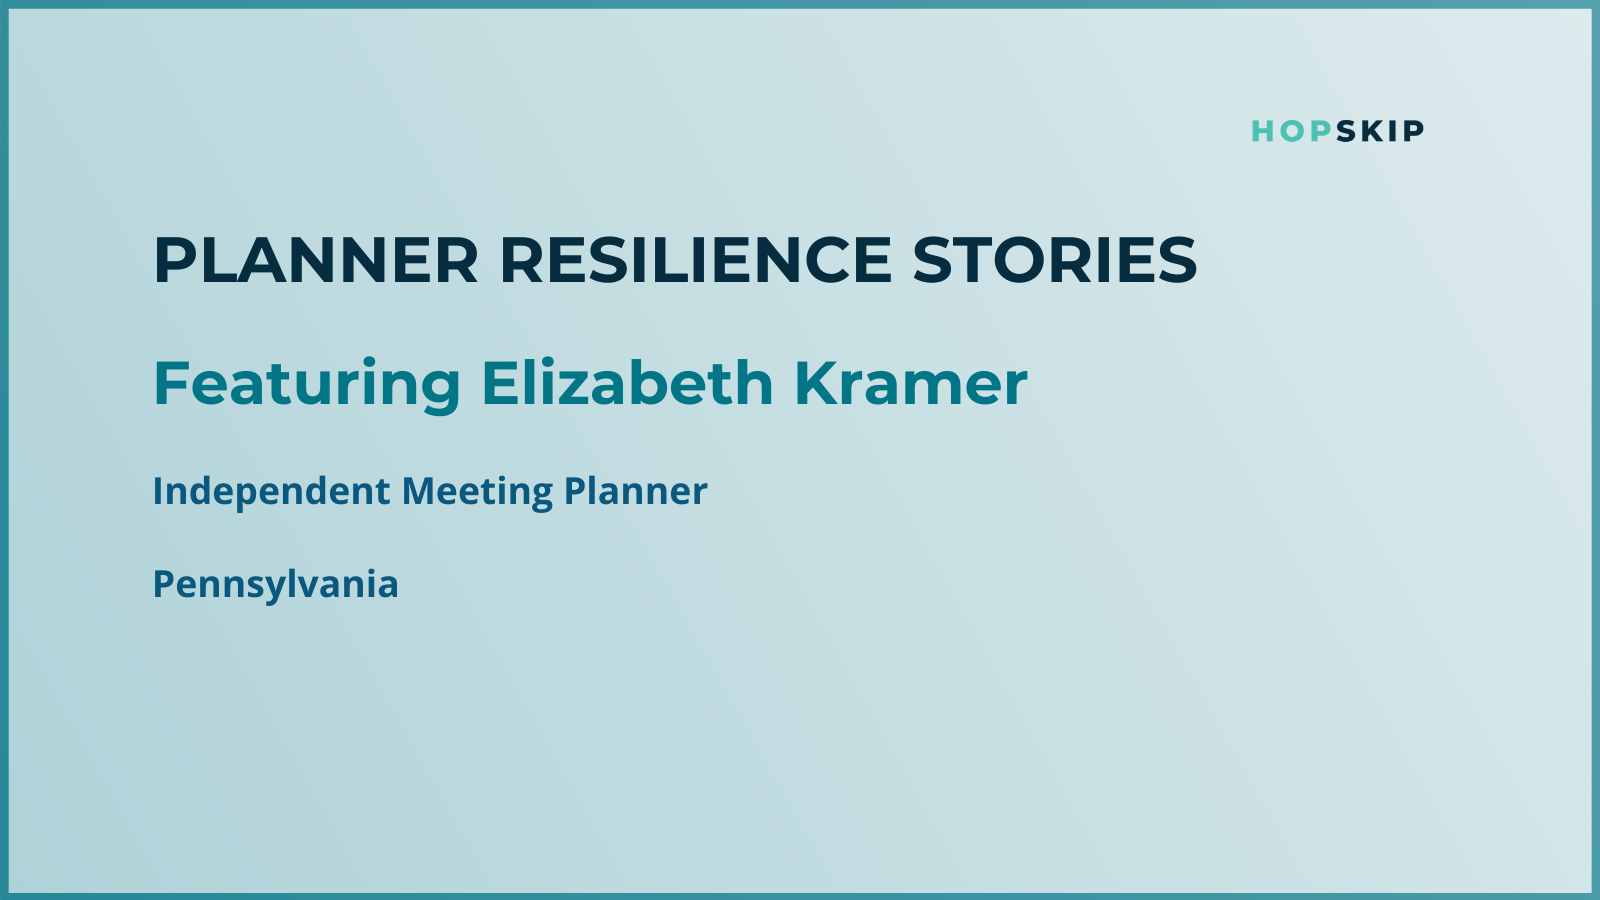 Liz Kramer, showing how resilient she is during COVID-19